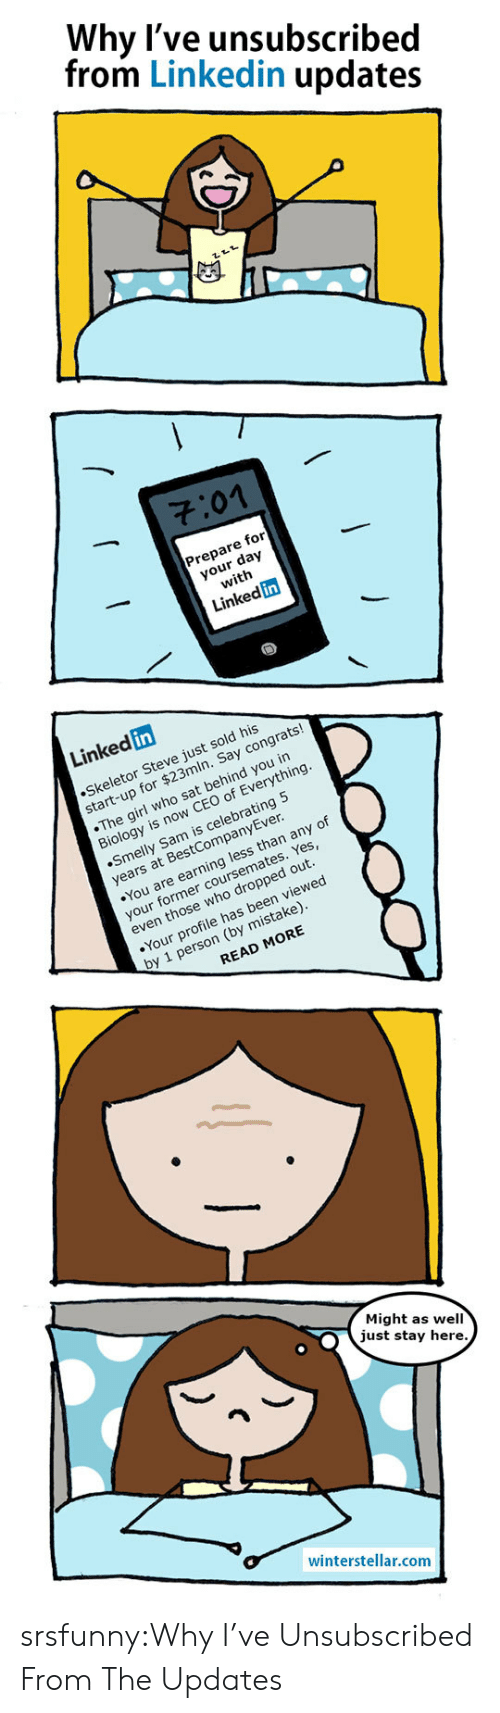 skeletor: Why l've unsubscribed  from Linkedin updates  701  Prepare for  your day  with  Linked in  Linked in  Skeletor Steve just sold his  start-up for $23mln. Say congrats!  The girl who sat behind you in  Biology is now CEO of Everything  Smelly Sam is celebrating 5  years at BestCompanyEver  You are earning less than any of  your former coursemates. Yes  even those who dropped out  Your profile has been viewed  by 1 person (by mistake)  READ MORE  Might as well  just stay here  winterstellar.comm srsfunny:Why I've Unsubscribed From The Updates